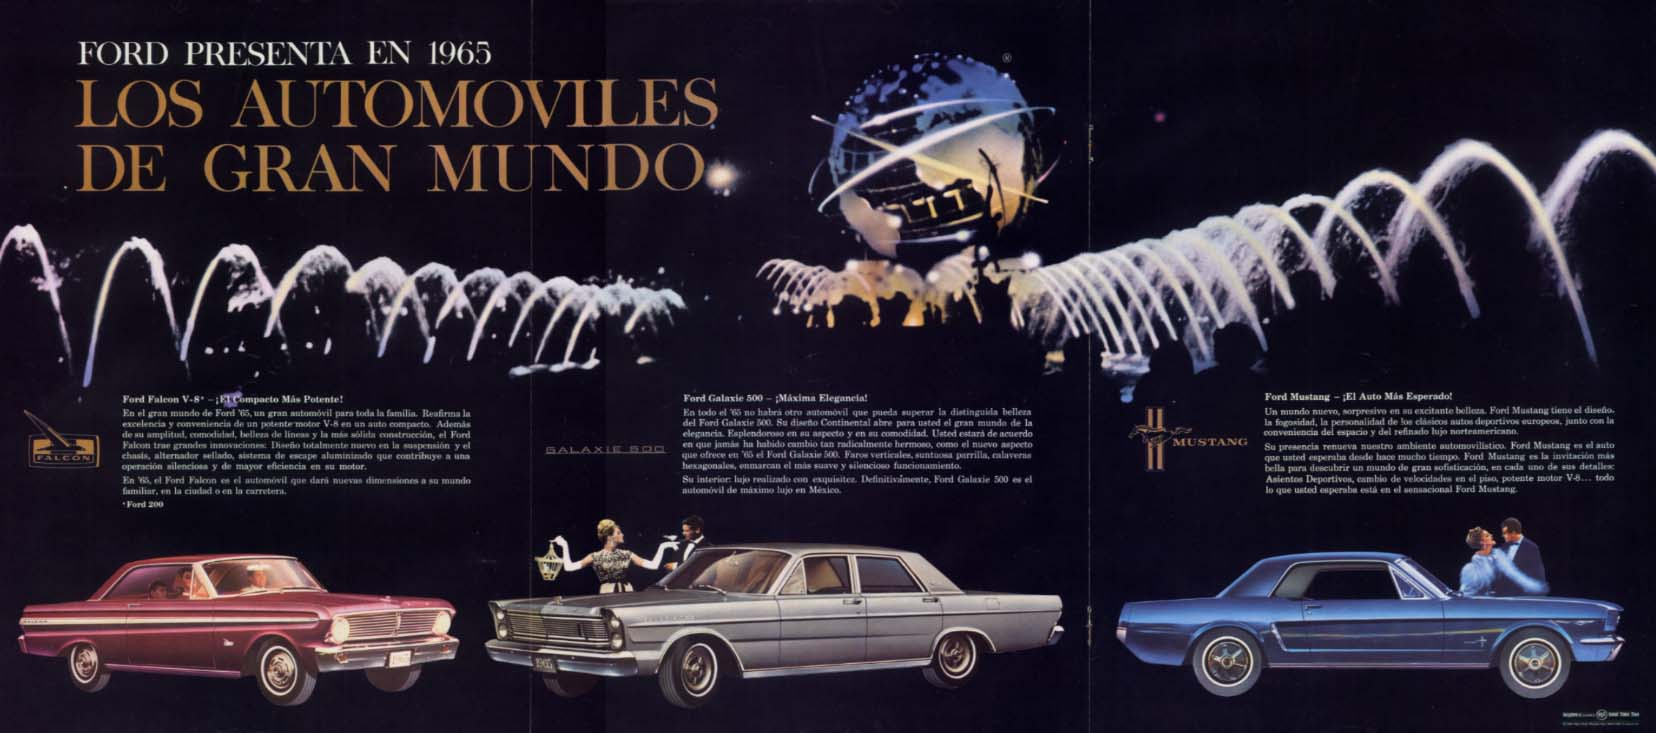 Image for NY World's Fair Ford Falcon Galaxie 500 Mustang ad in Spanish 1965